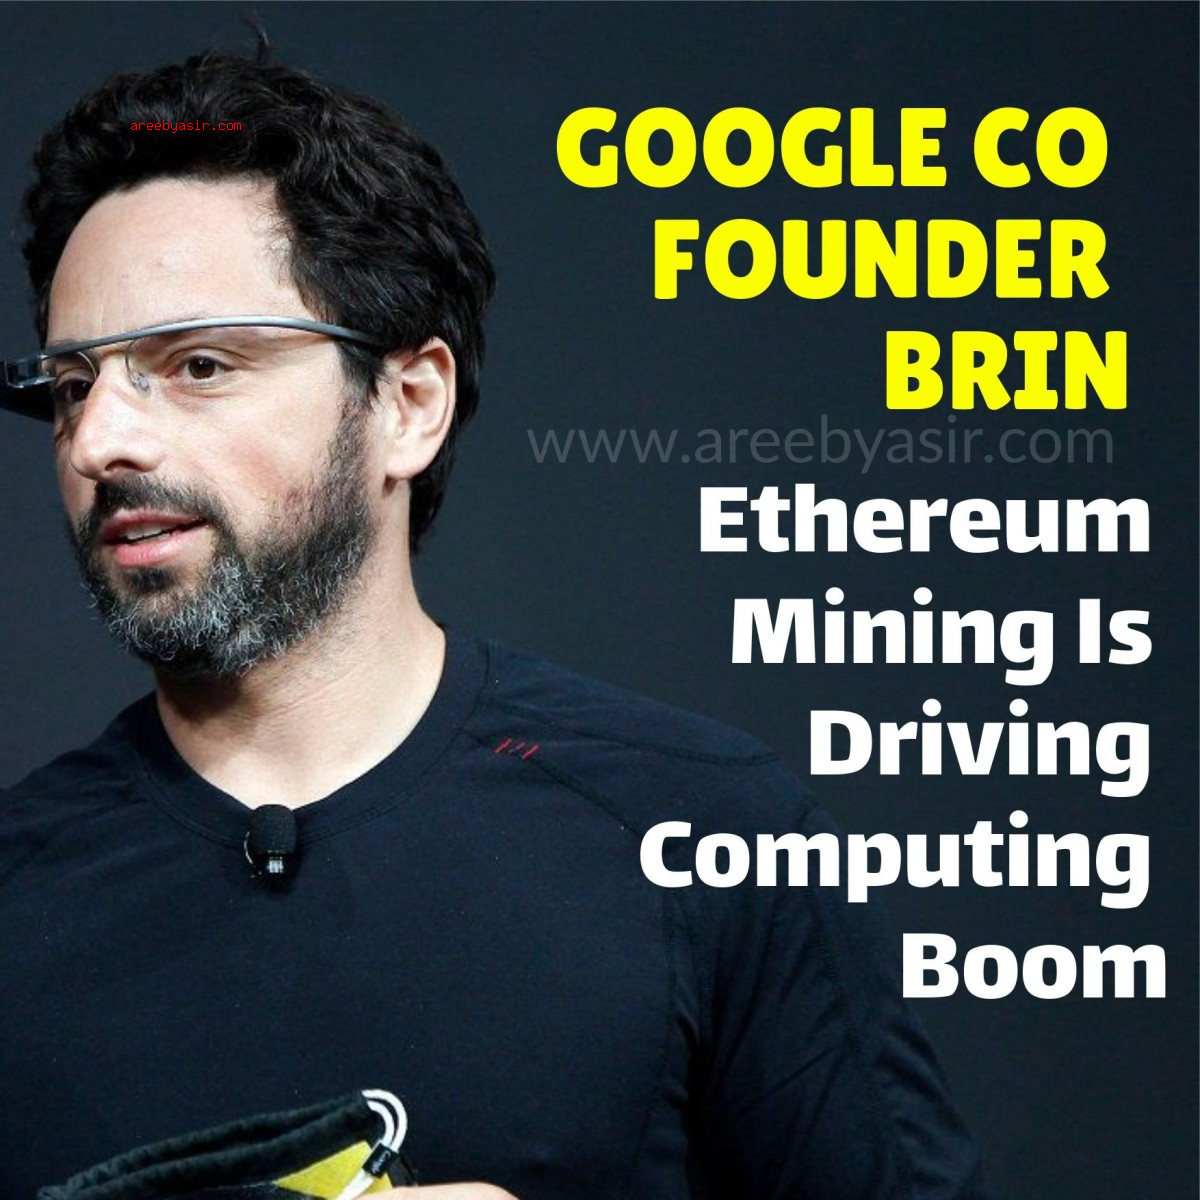 Ethereum-Mining-Driving-Computing-Boom-Says-Google